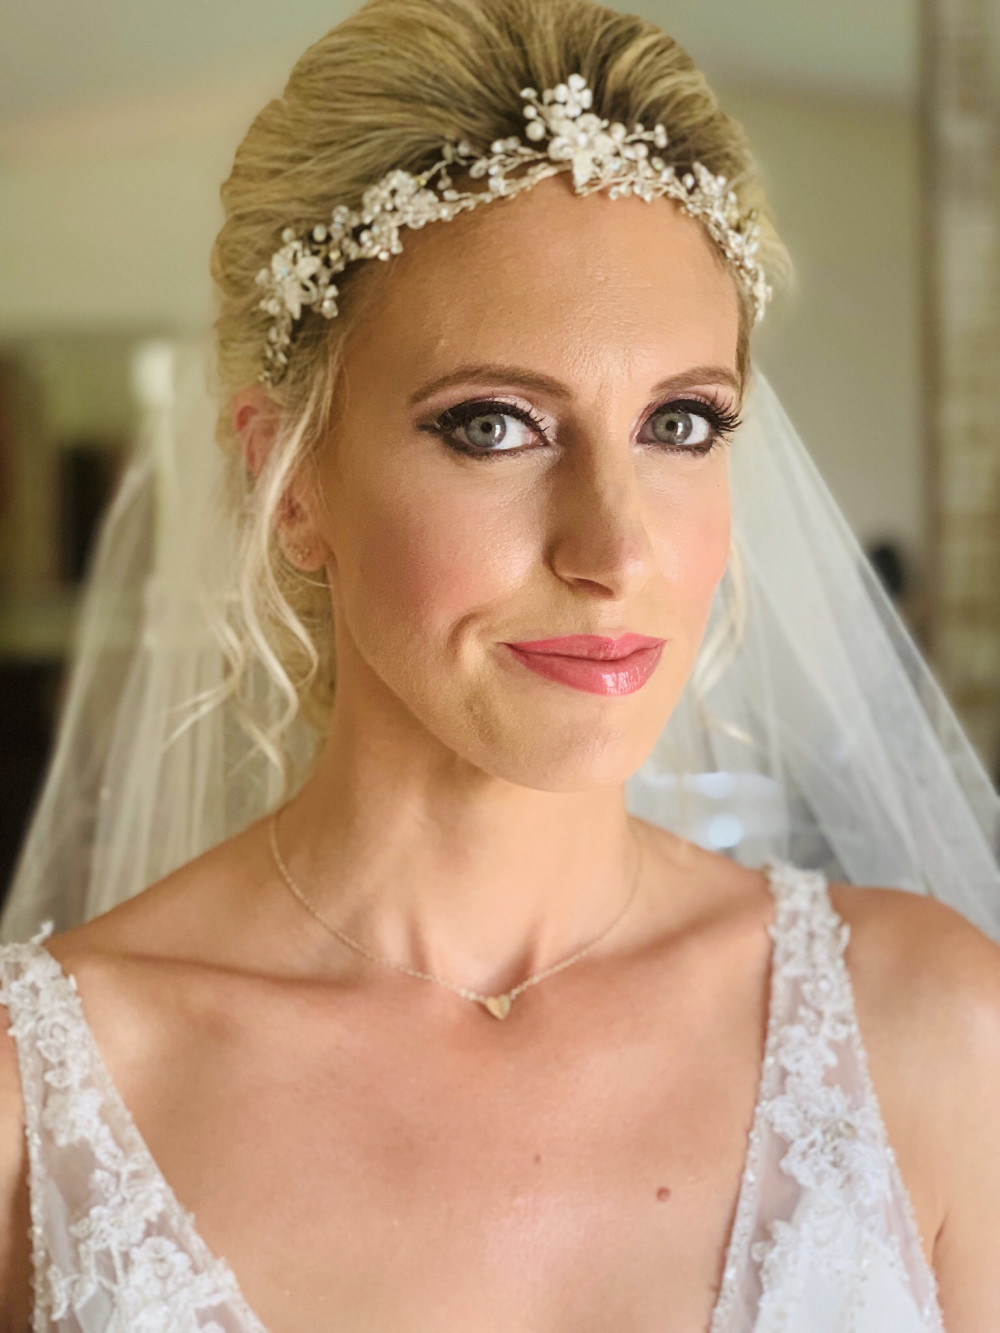 My client requested a mermaid hair style and glamours makeup . Ellie really new what she wanted with her makeup and picked every colour and loved a stronger glamour eye .   I was so please how she looked and she was too :) - Make Me Bridal Artist: RLM wedding makeup. Photography by: Rebecca Louise Middleton. #glamorous